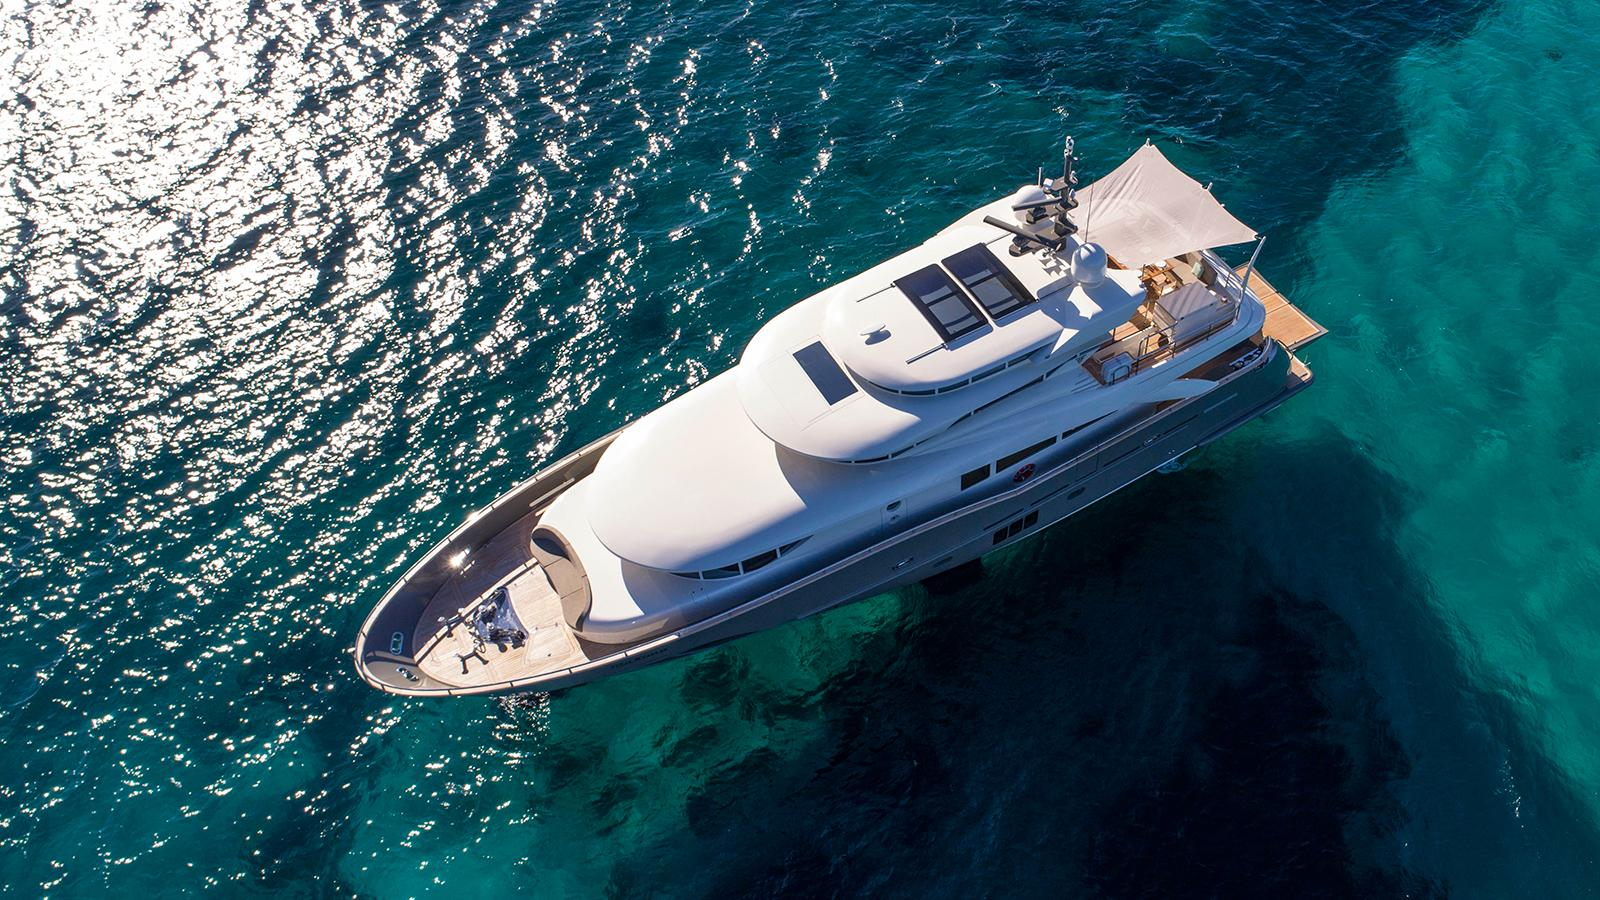 The highly personal 26m yacht from Filippetti